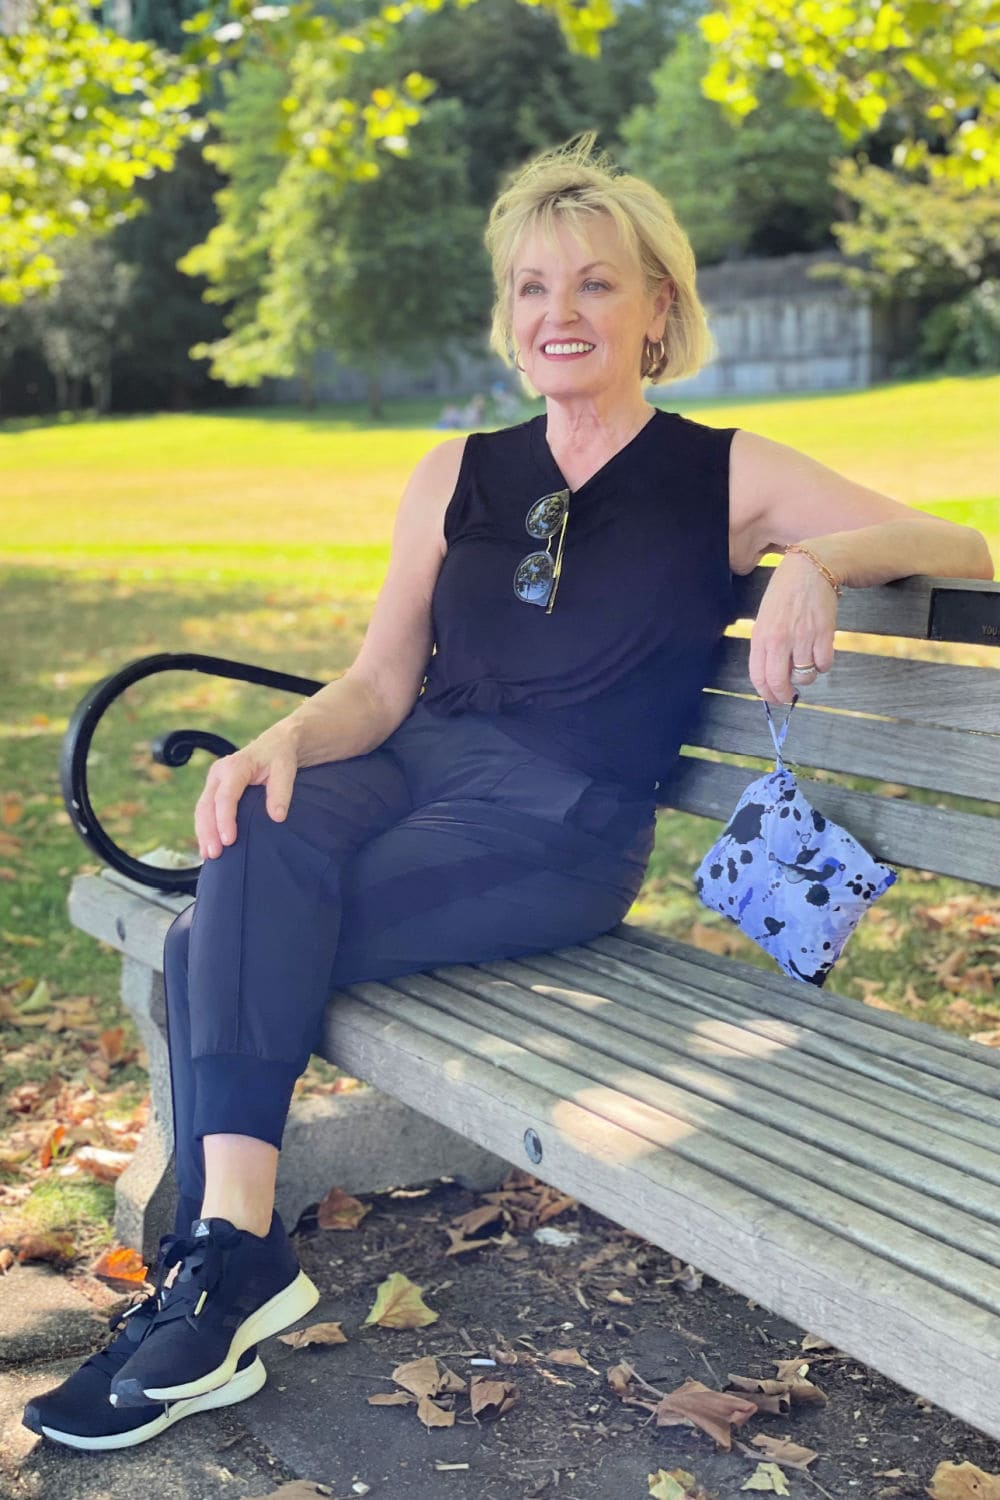 woman sitting on bench wearing black Zella pants and top